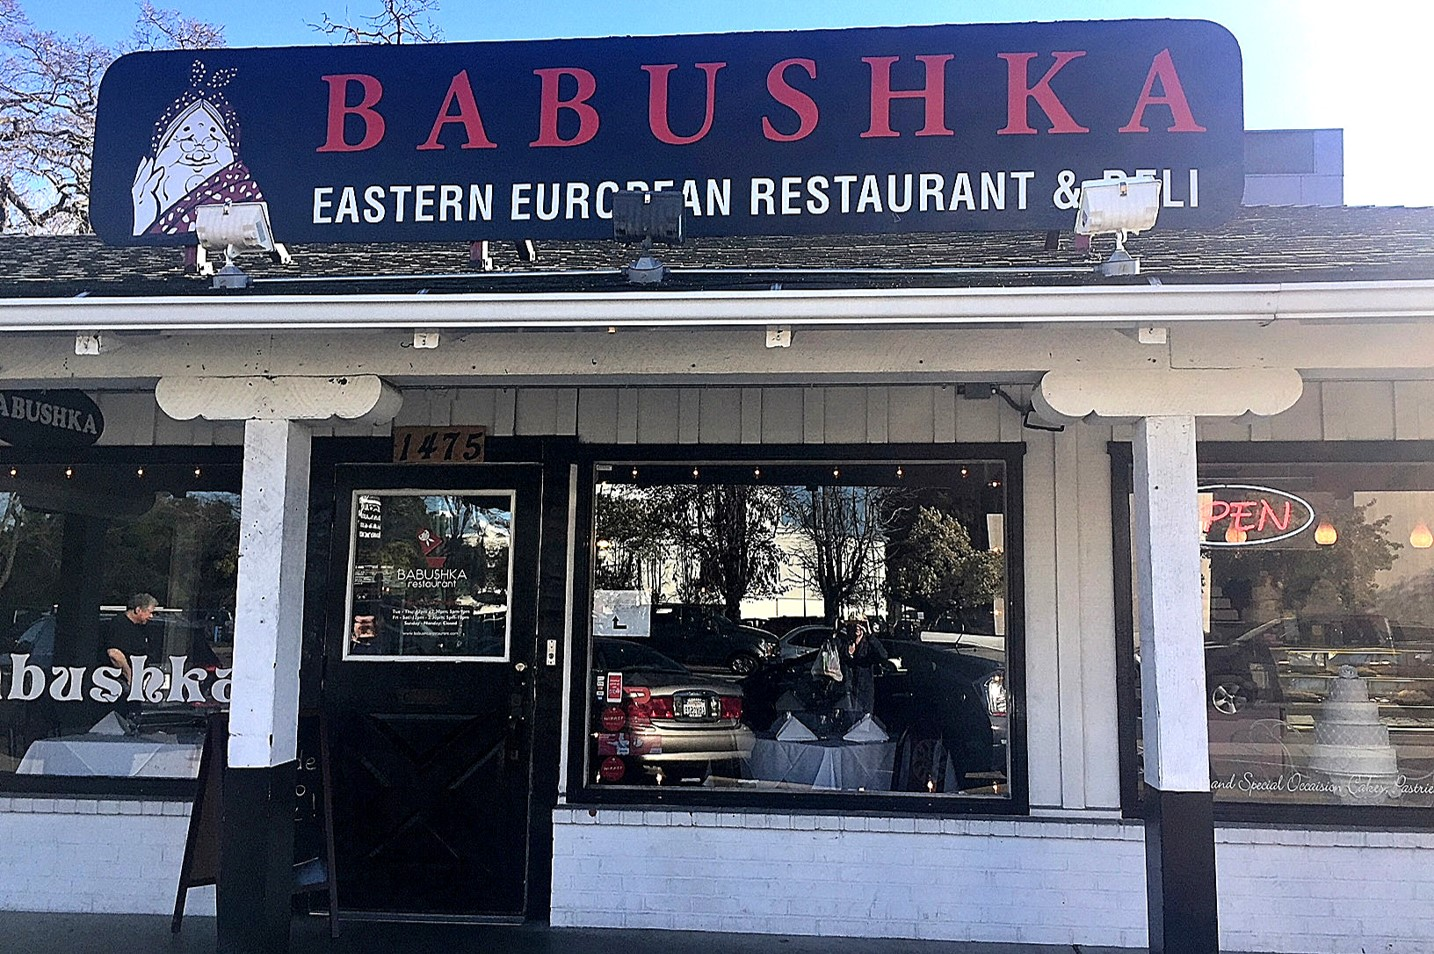 1 Babushka Eastern European Restaurant and Deli front